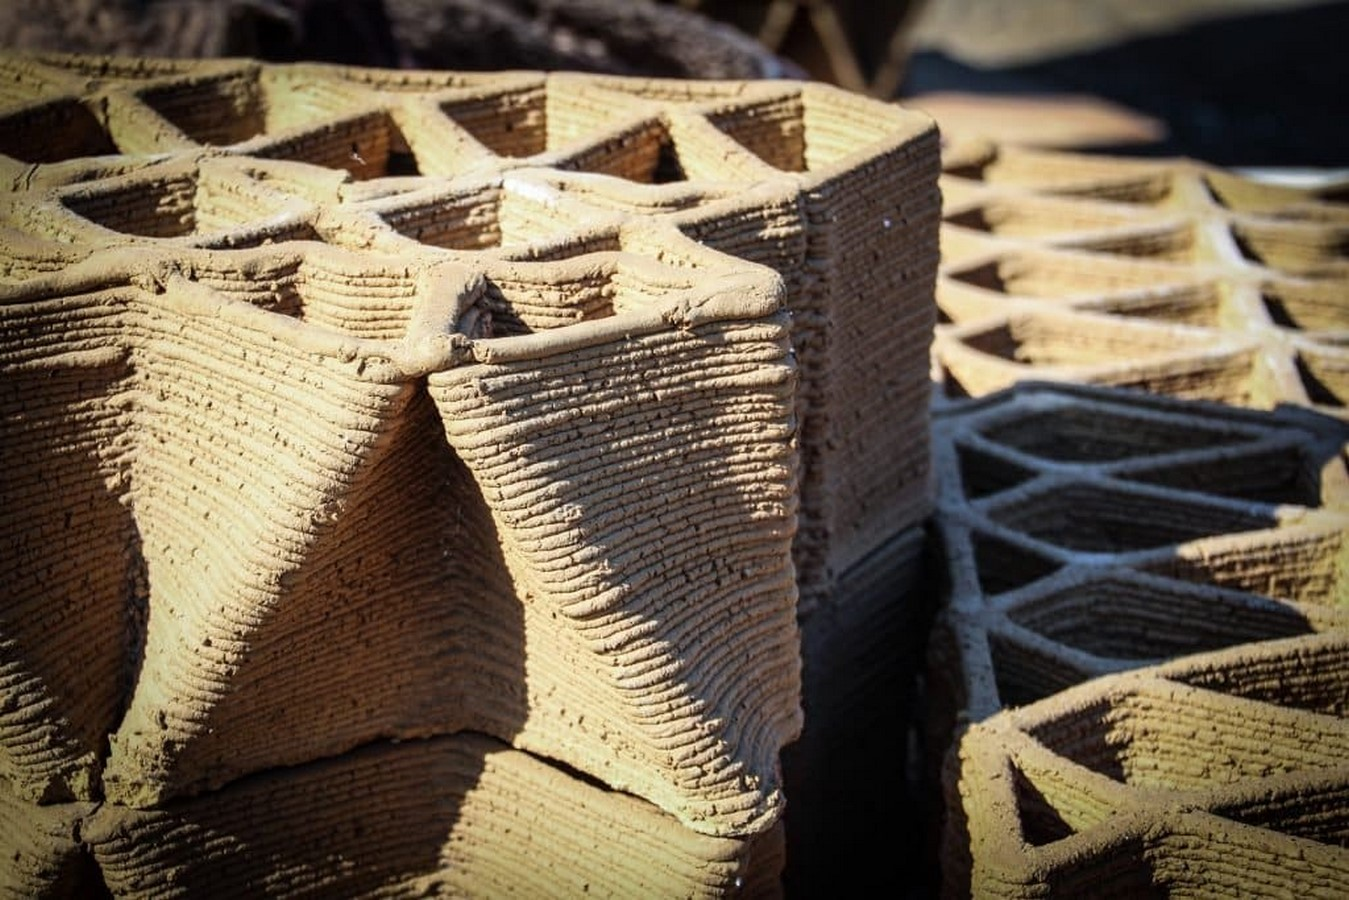 IAAC Research- 3D Printing with 'terra'- a new step in local architecture? - Sheet3